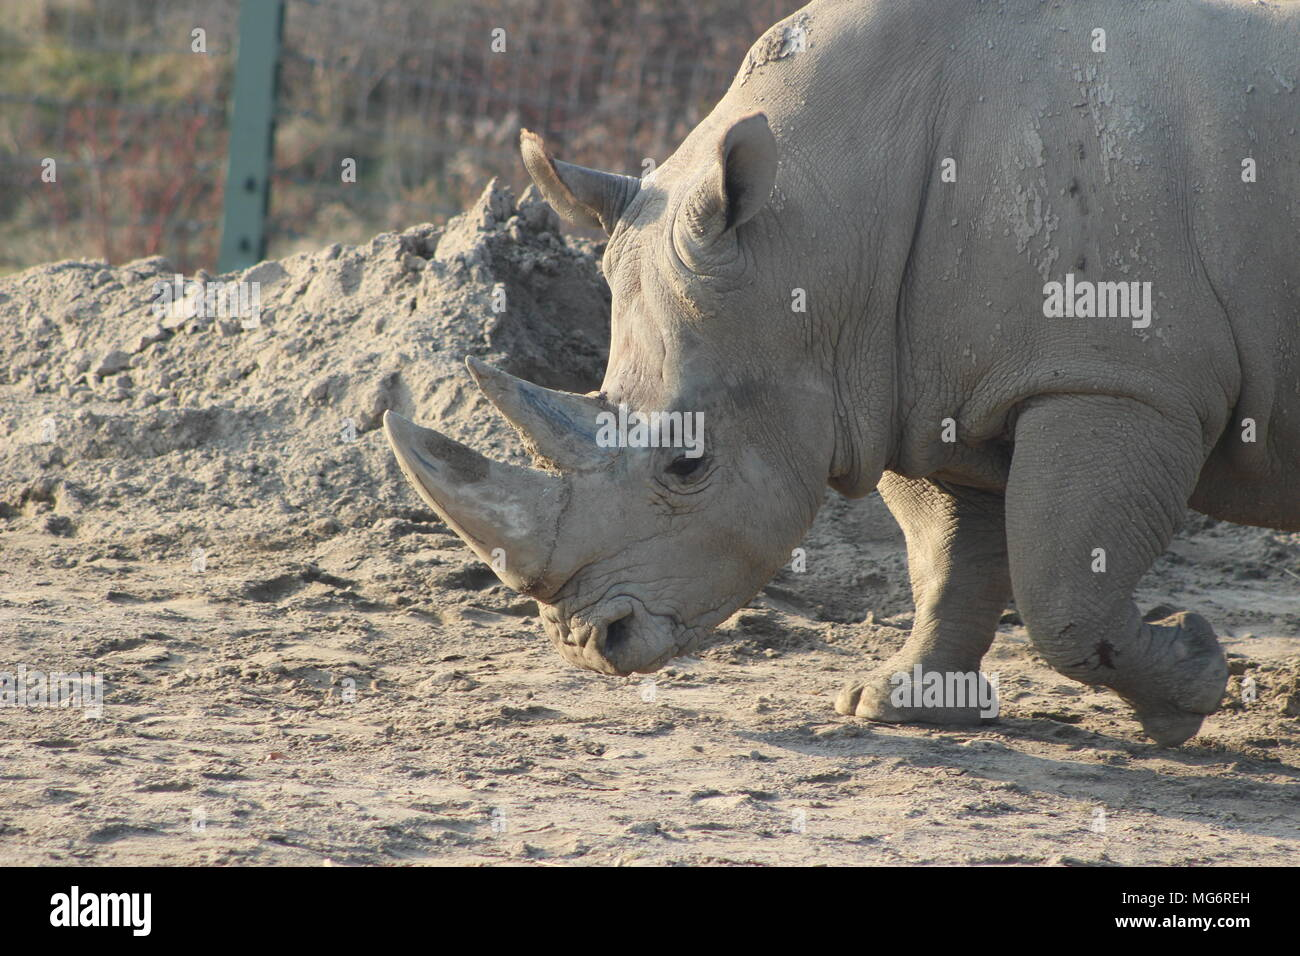 Close up portrait of a white rhino - Stock Image